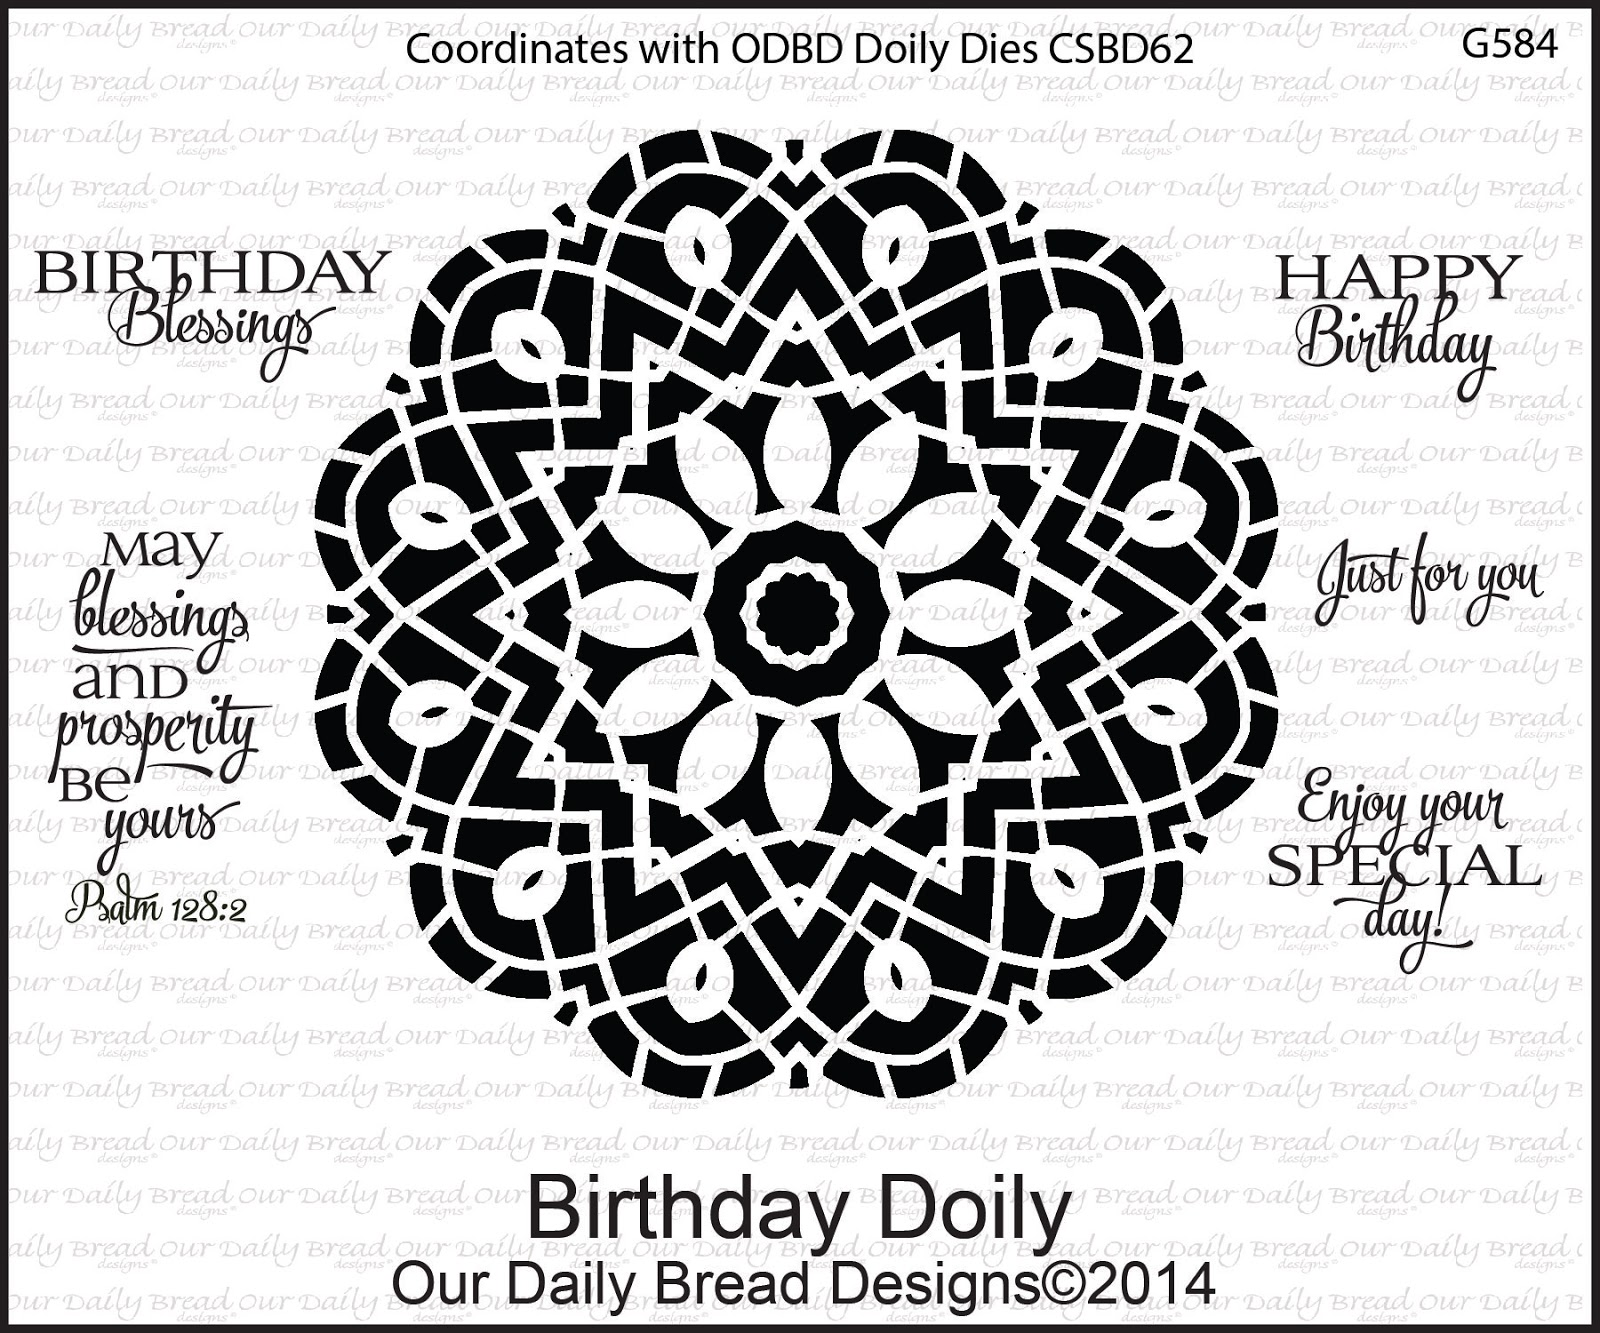 Stamps - Our Daily Bread Designs Birthday Doily